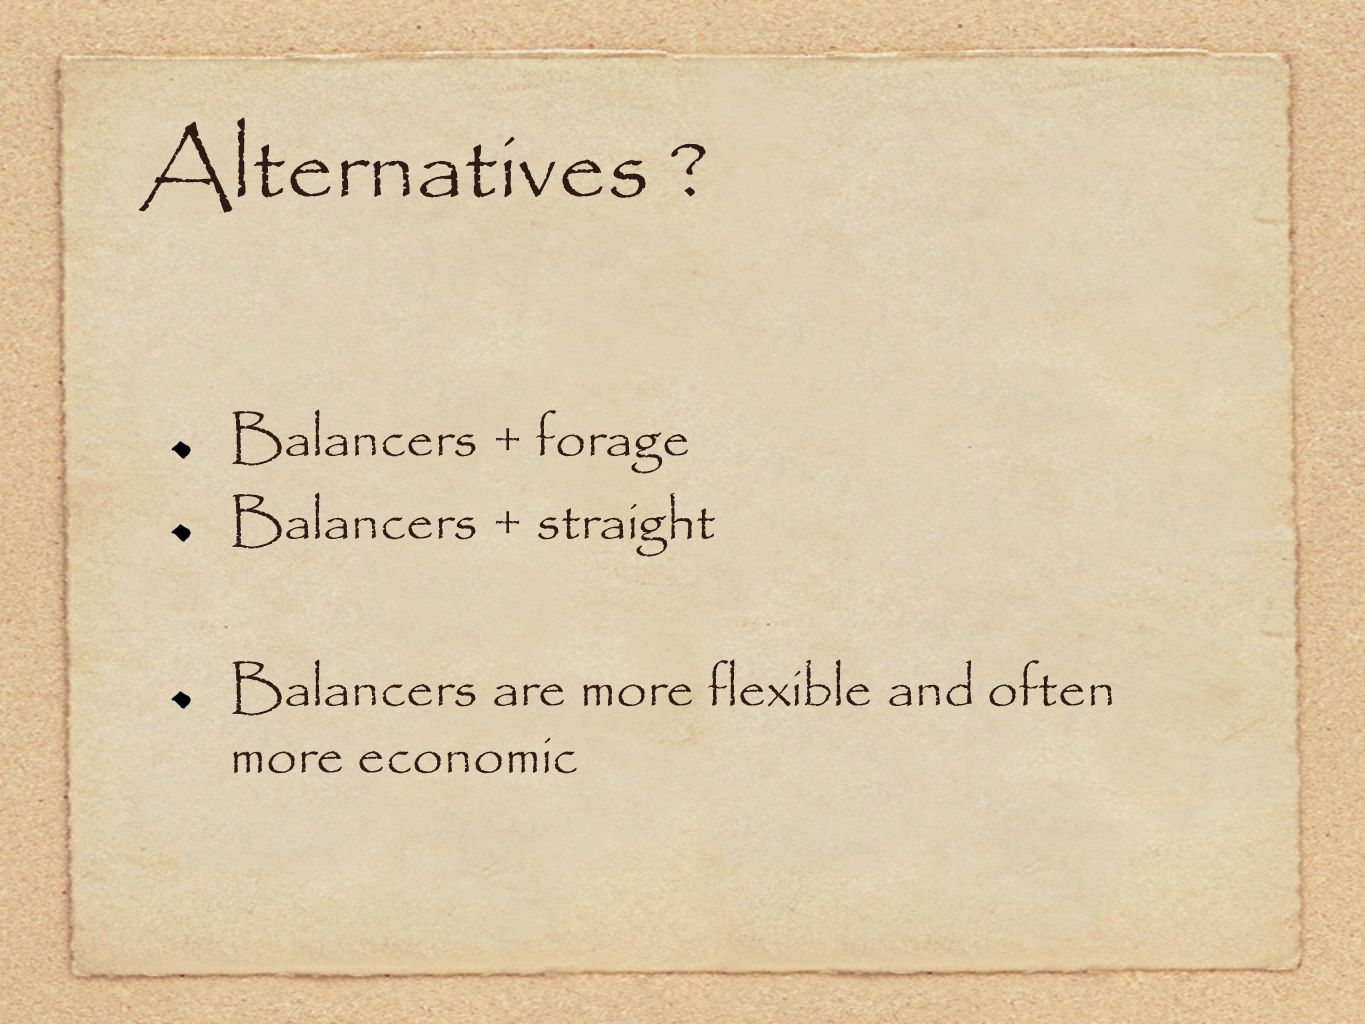 Alternatives ? Balancers + forage Balancers + straight Balancers are more flexible and often more economic